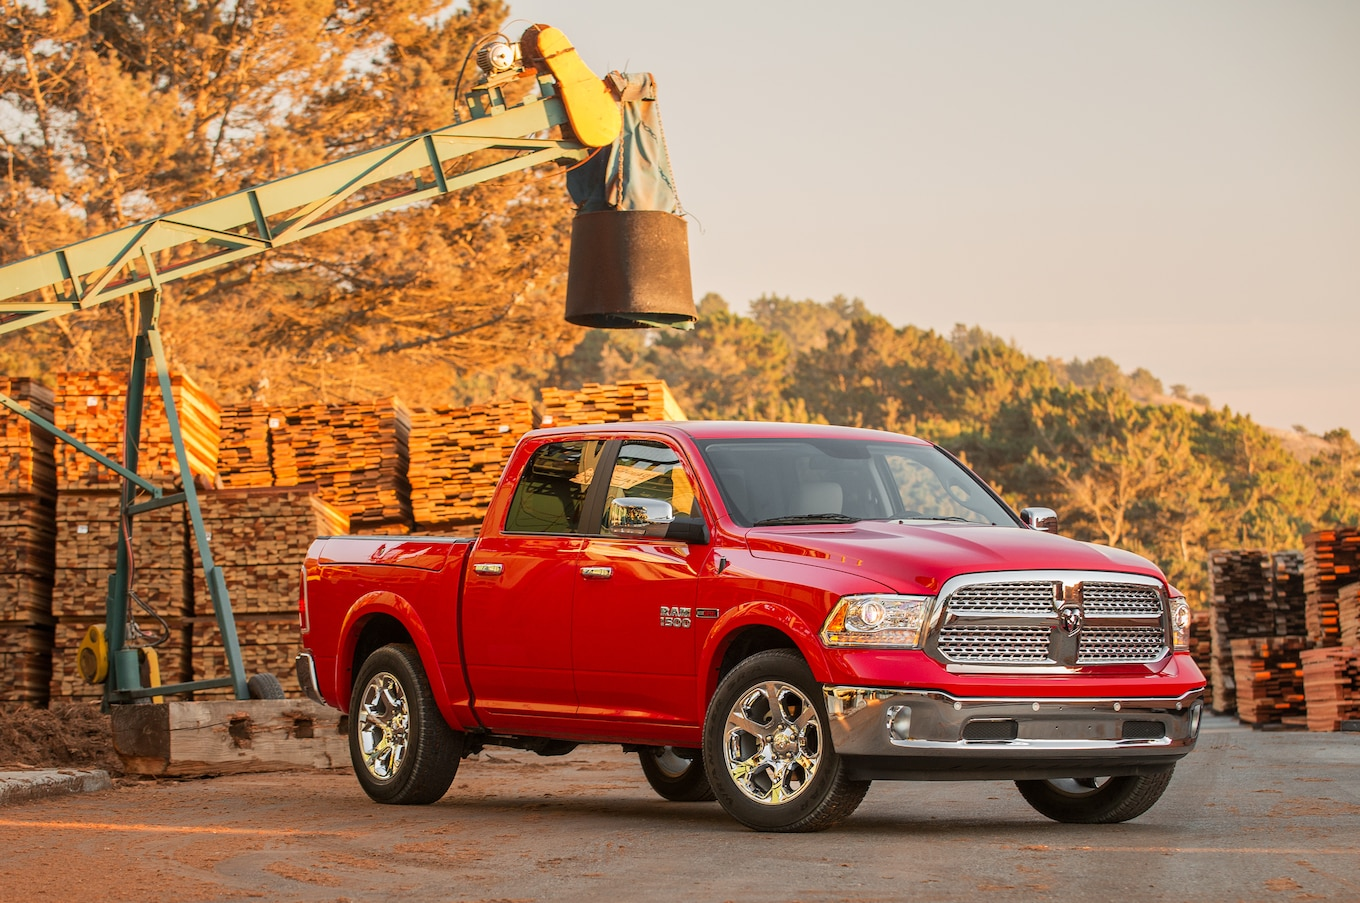 Ram Eco Sel Epa Rated At 20 28 Mpg